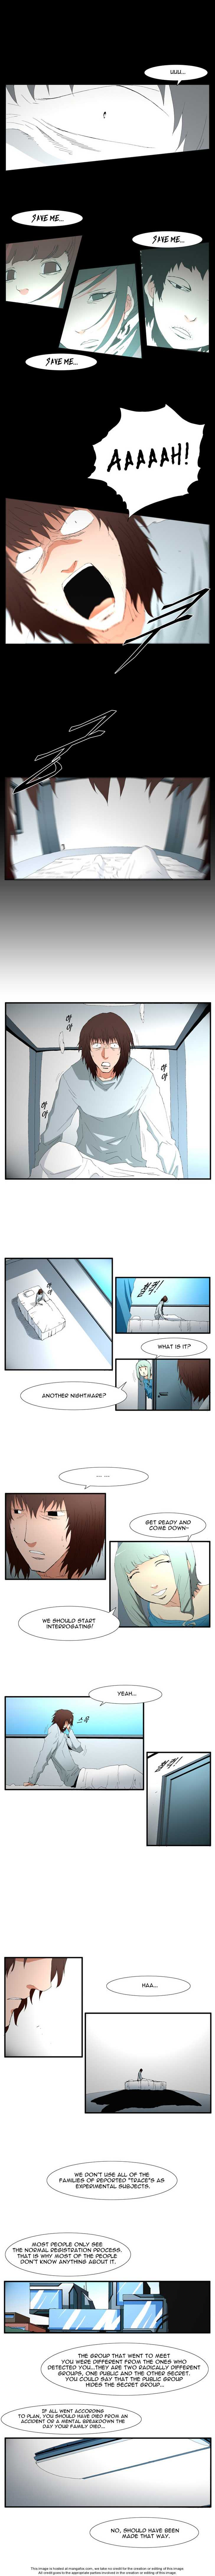 Trace 15 Page 3